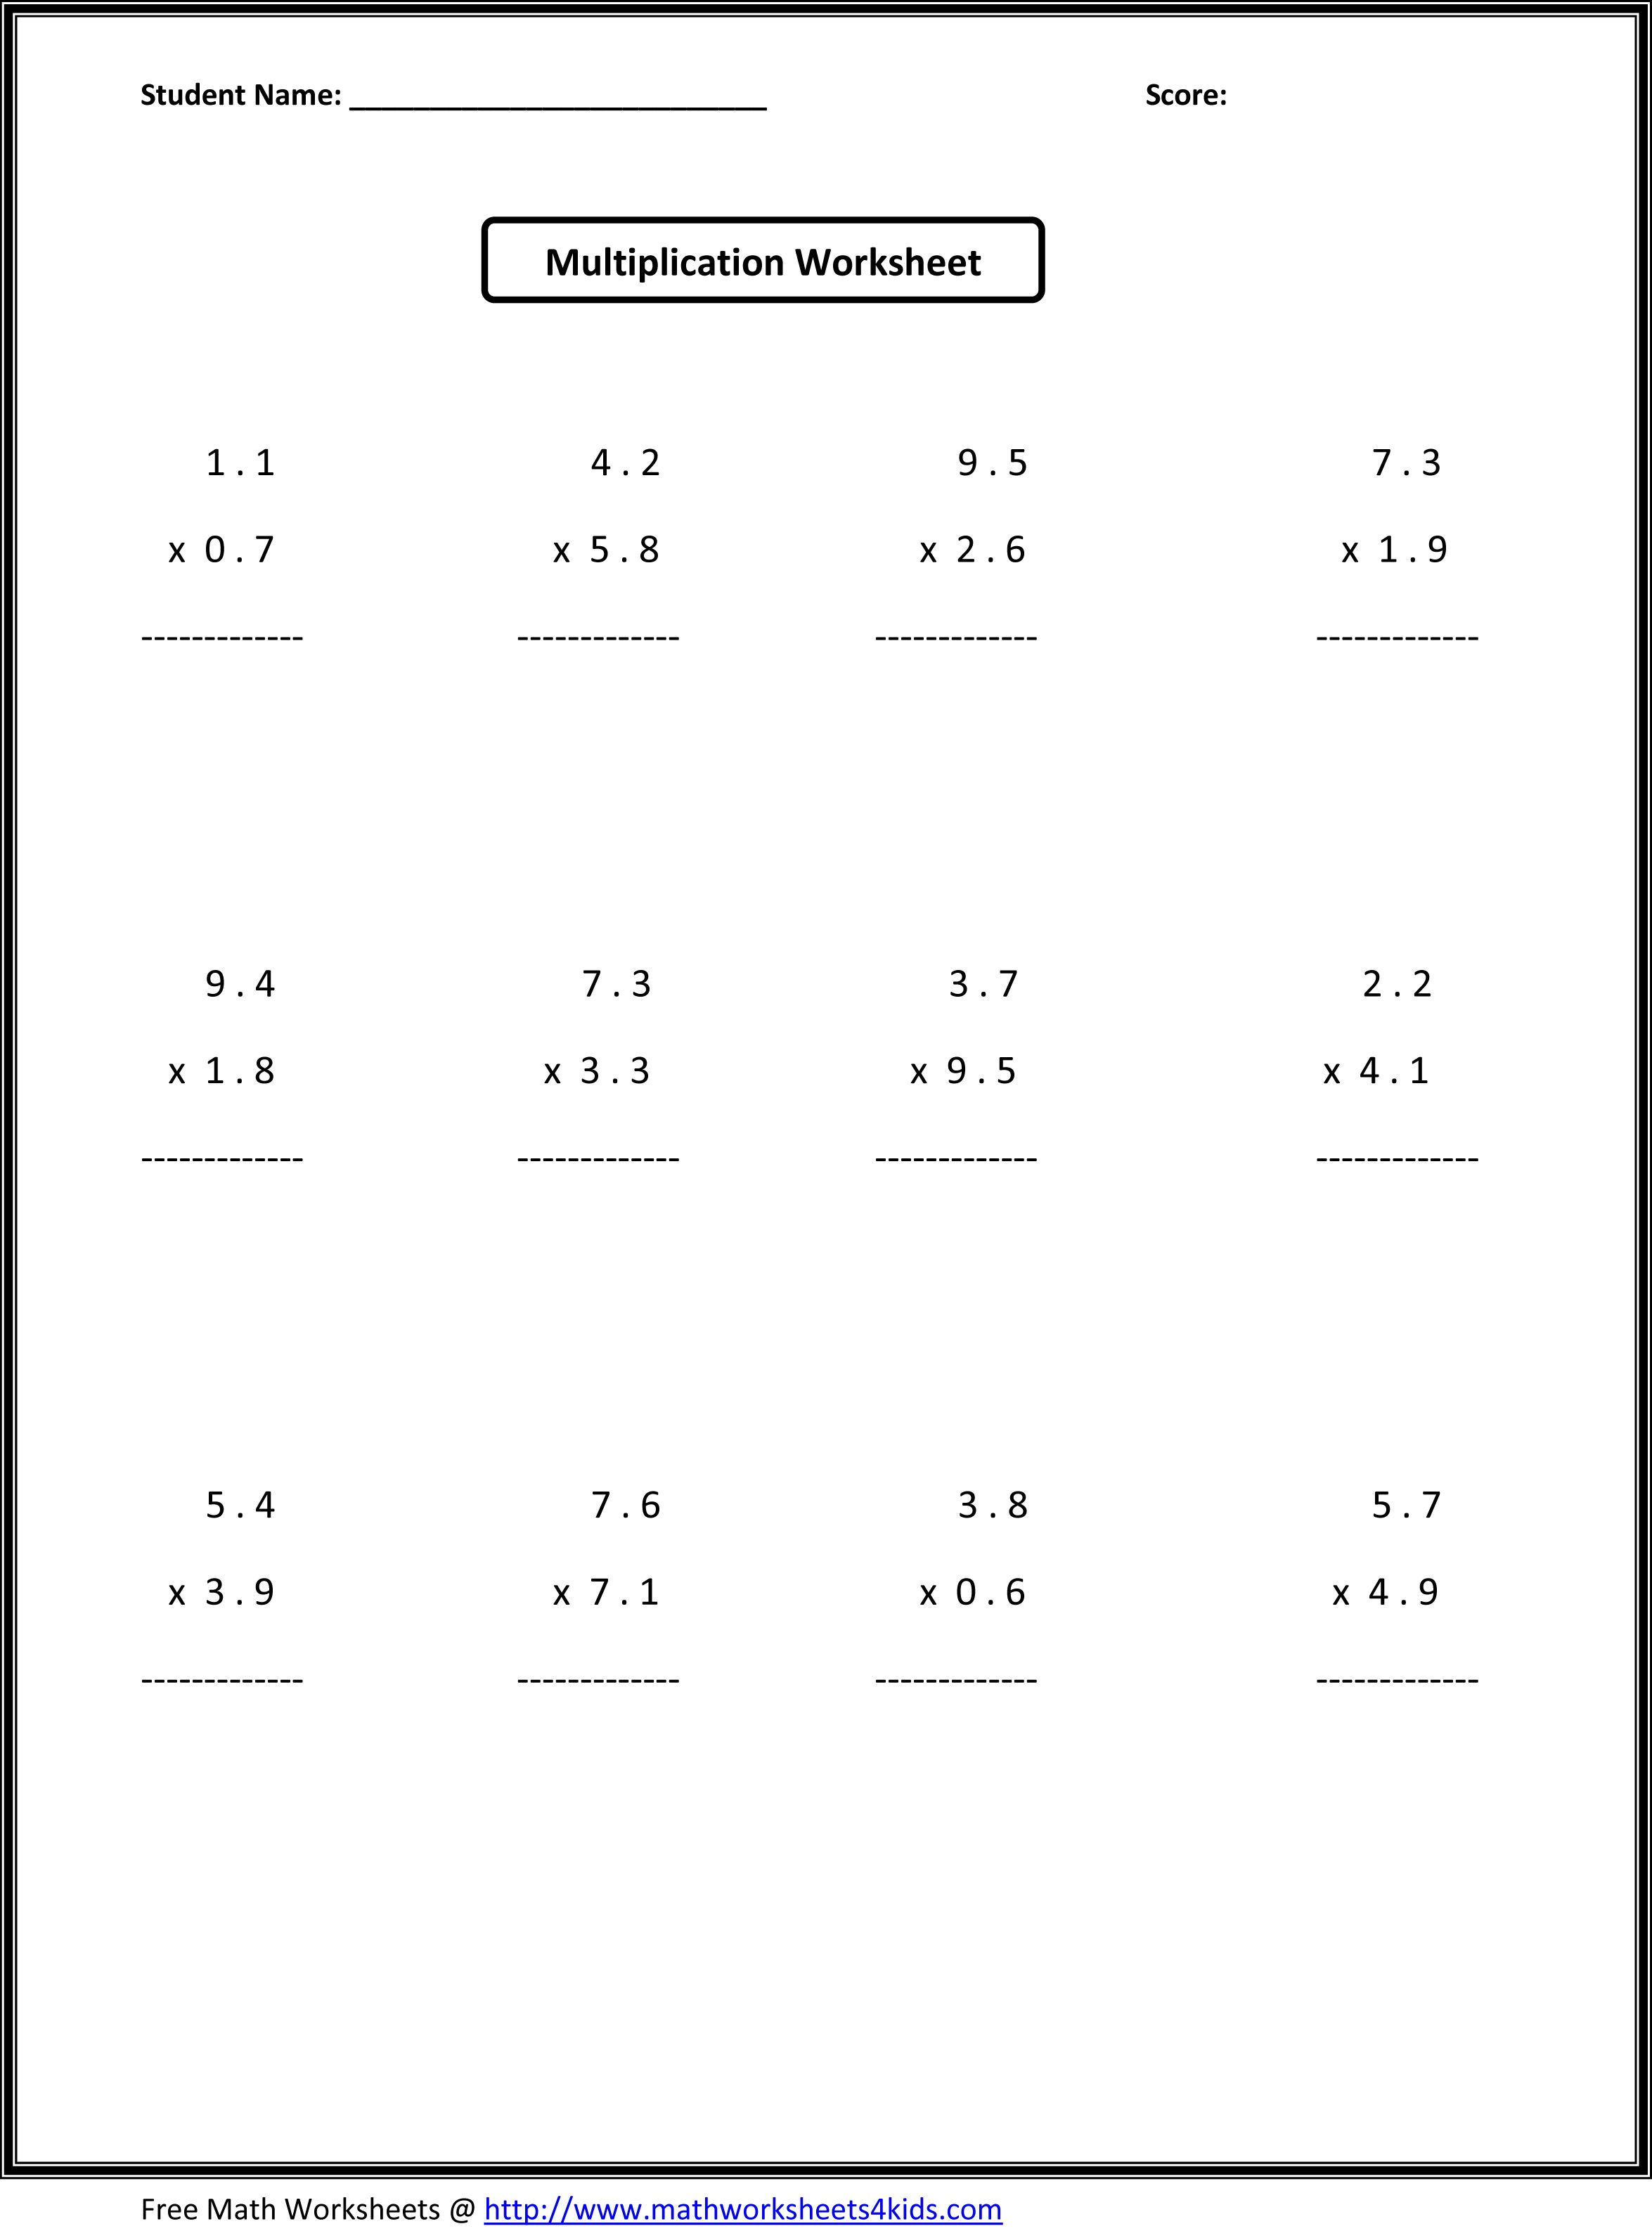 Uncategorized Free Sixth Grade Math Worksheets 7th grade math worksheets value absolute sixth have ratio multiplying and dividing fractions